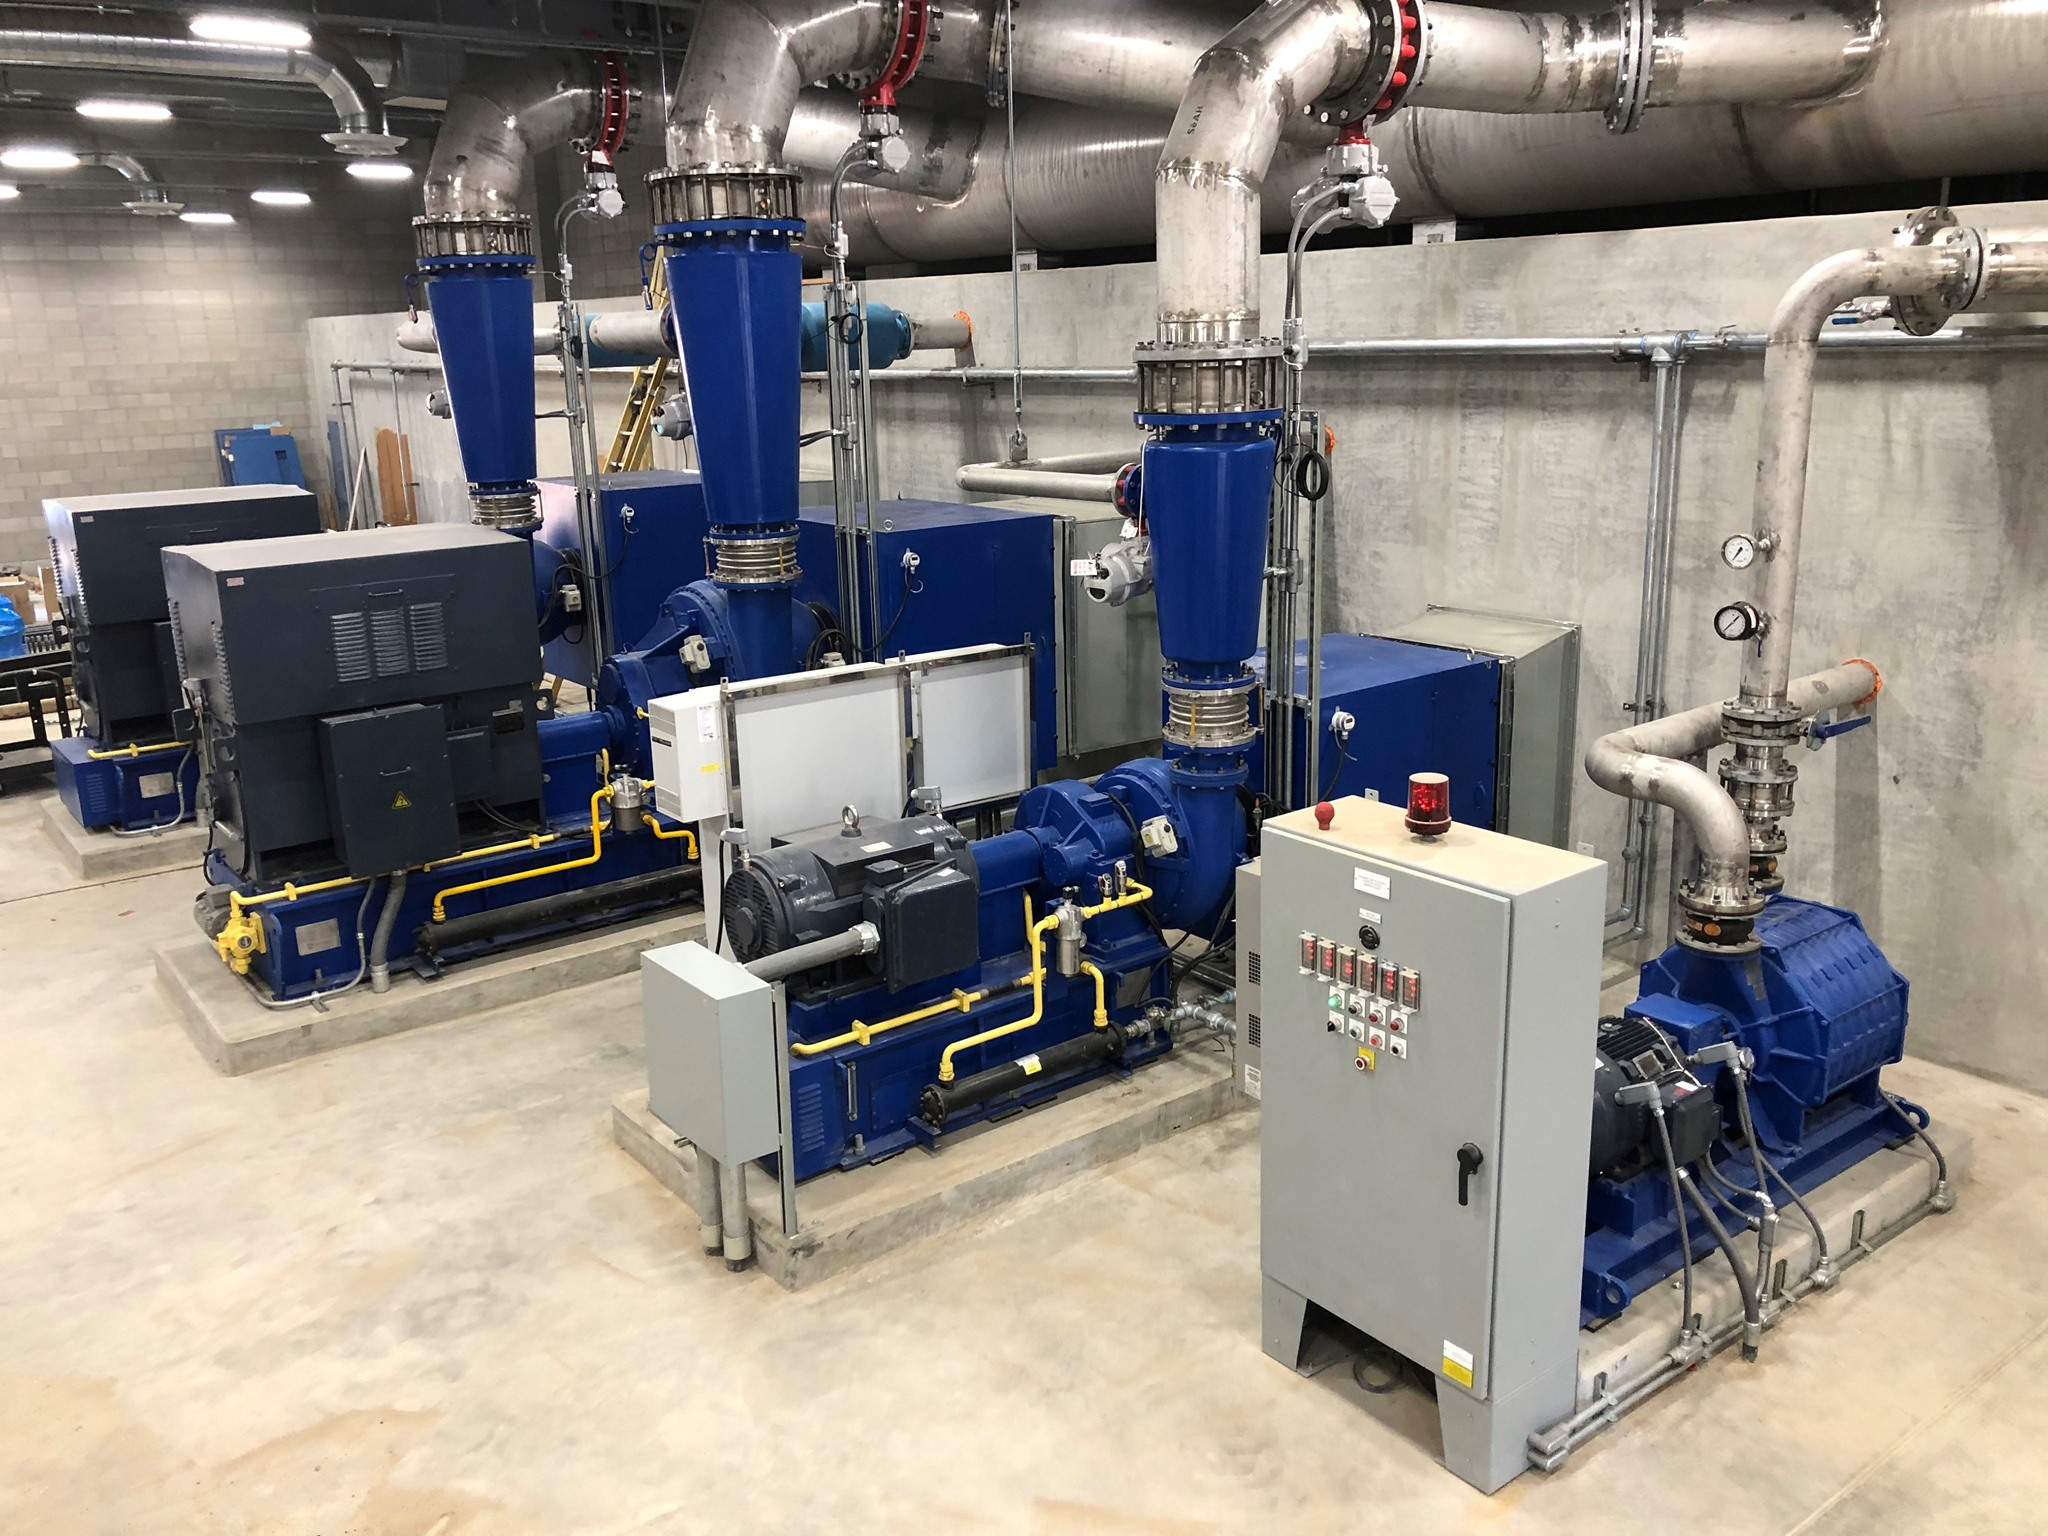 Lone Star is the premier manufacturer of Geared, Gearless, and Multistage Turbo blowers and Control Systems located in Houston, Texas USA. Our experience combined with reliable and efficient technologies can make a difference on your next project.